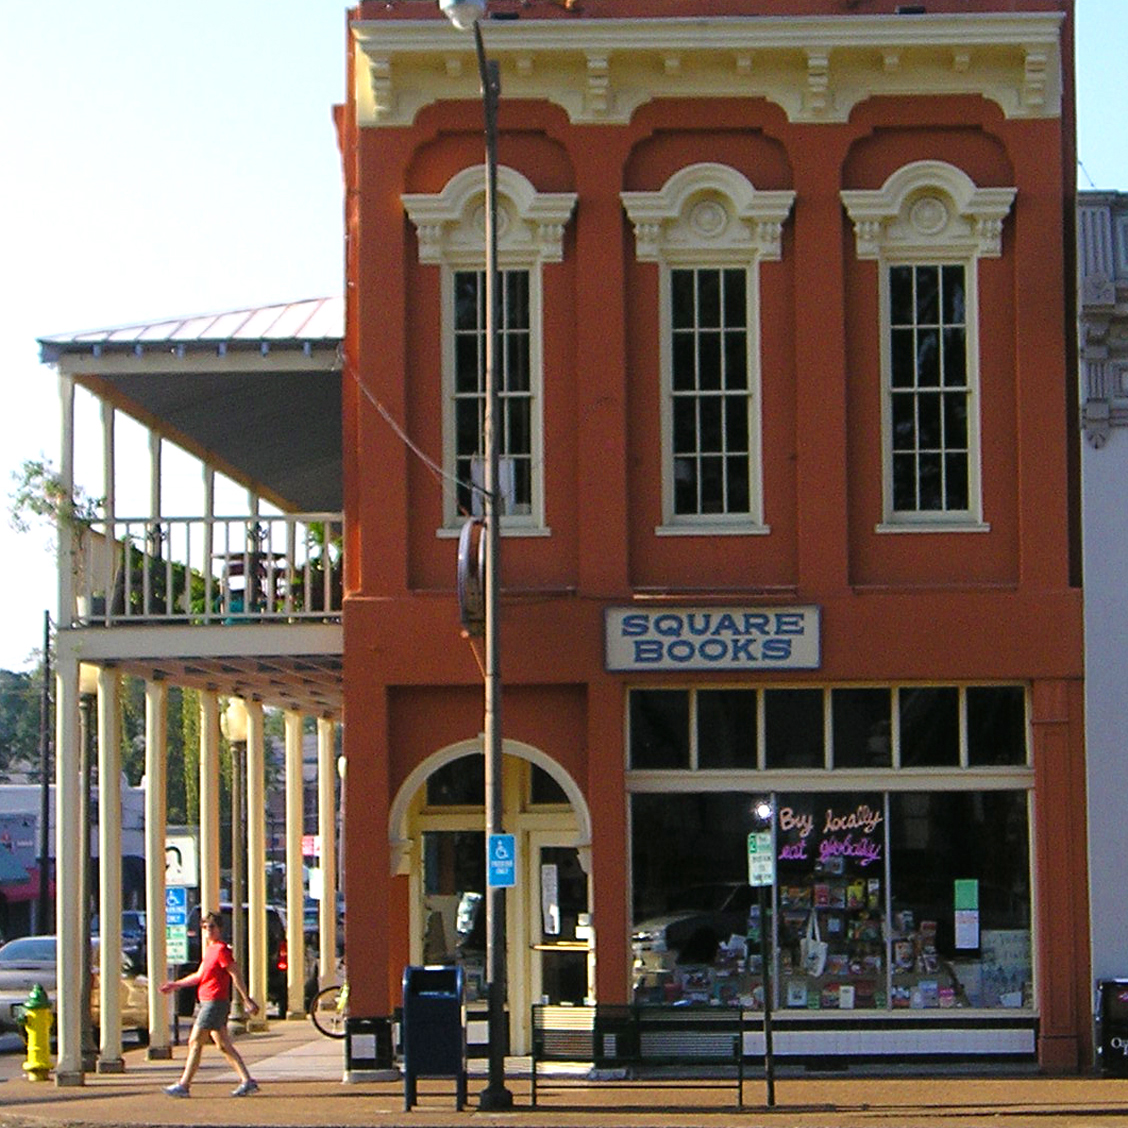 Square Books, Oxford MS